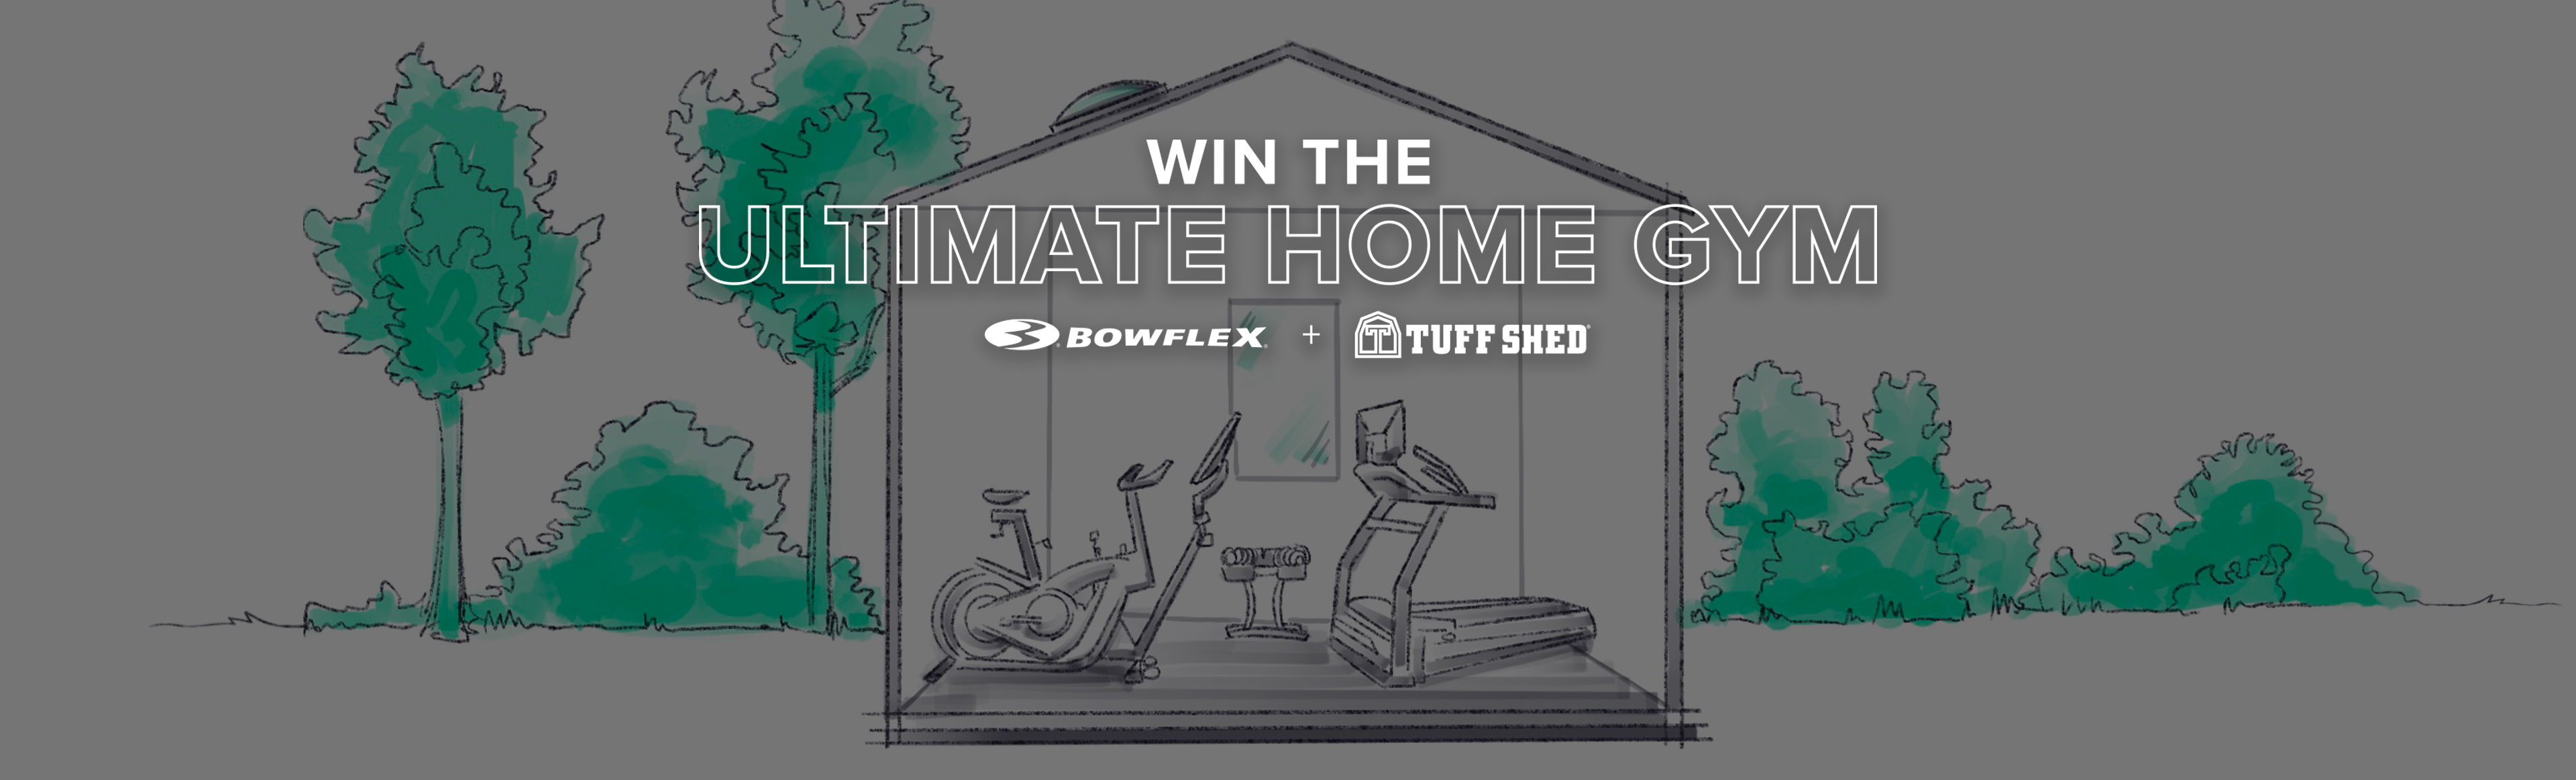 Win the Ultimate Home Gym Bowflex + Tuff Shed.